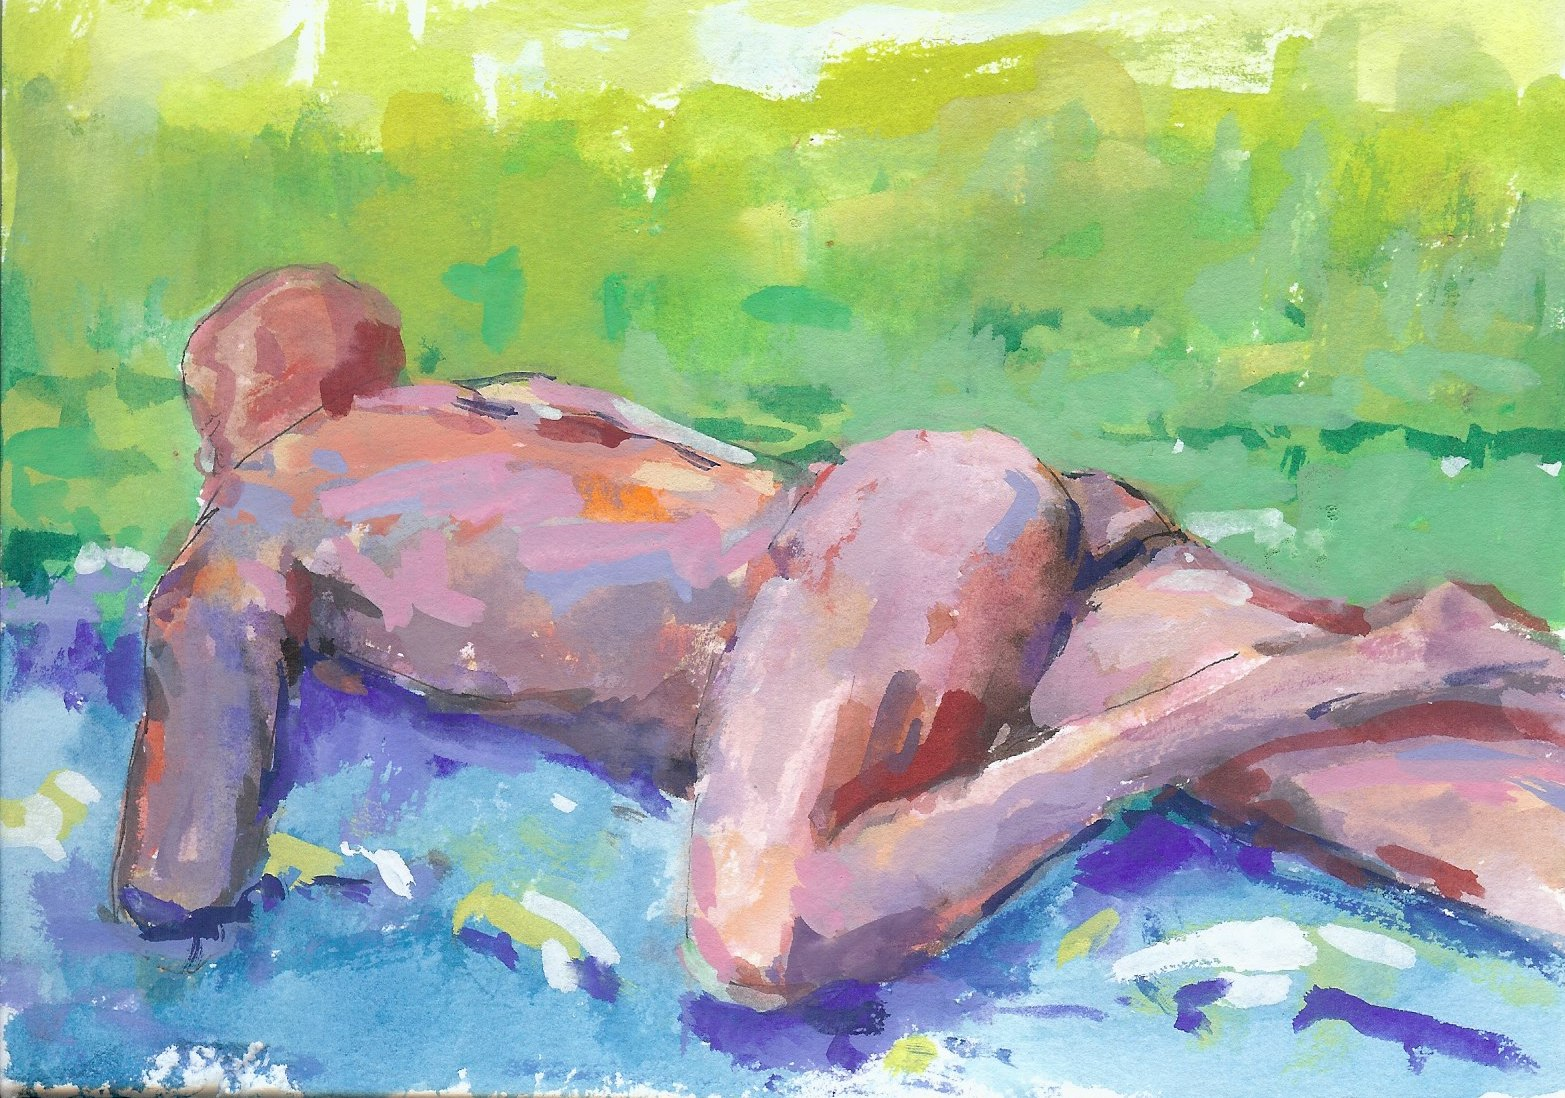 Figure with Green + Blue